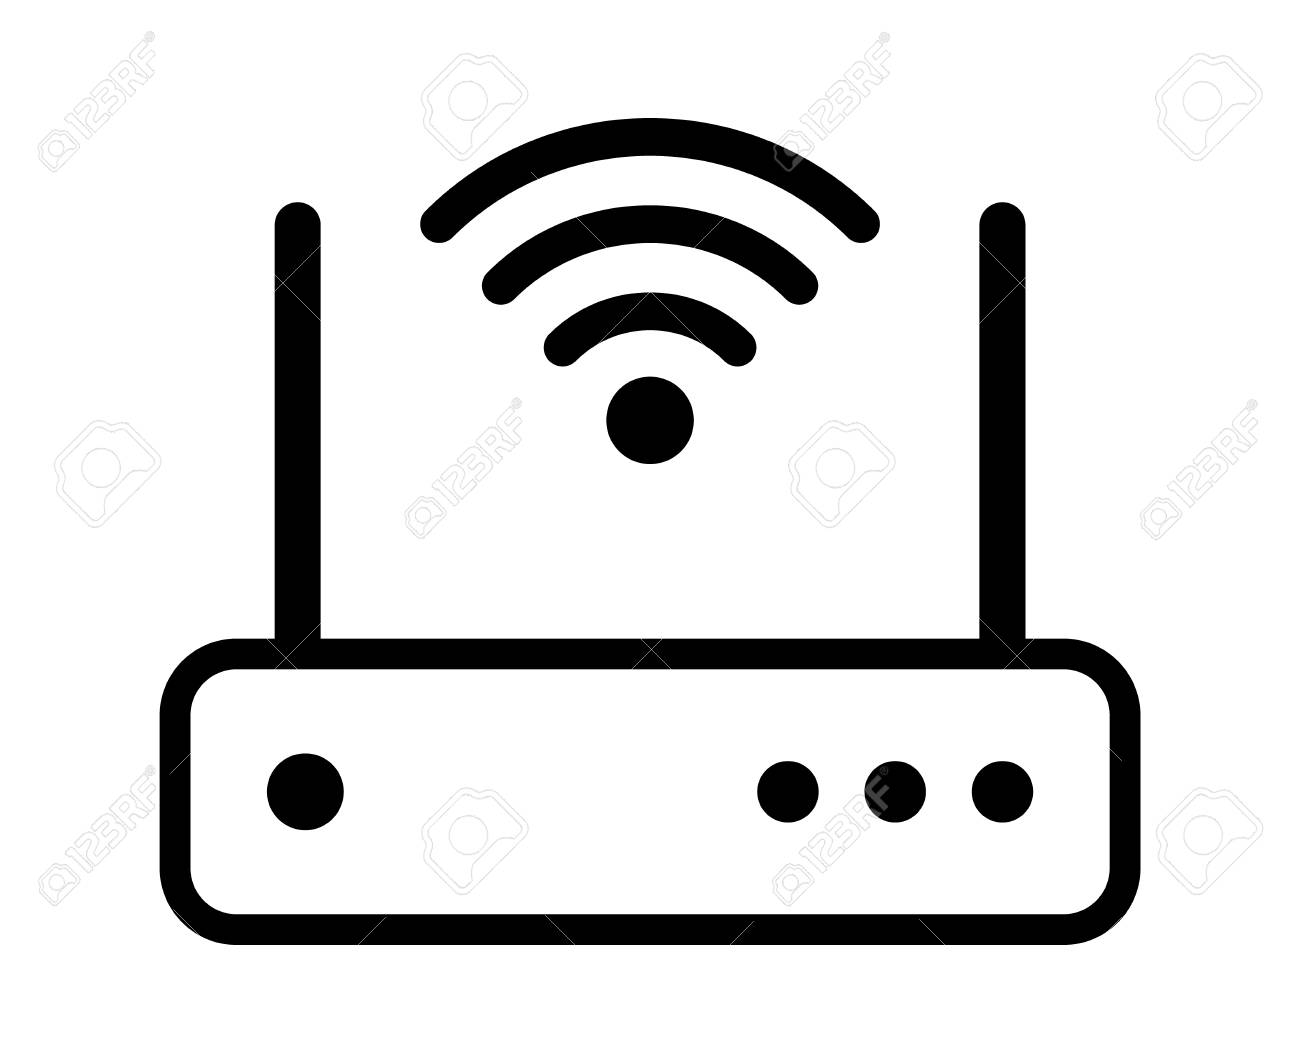 Internet service wireless router / modem with wifi signal line